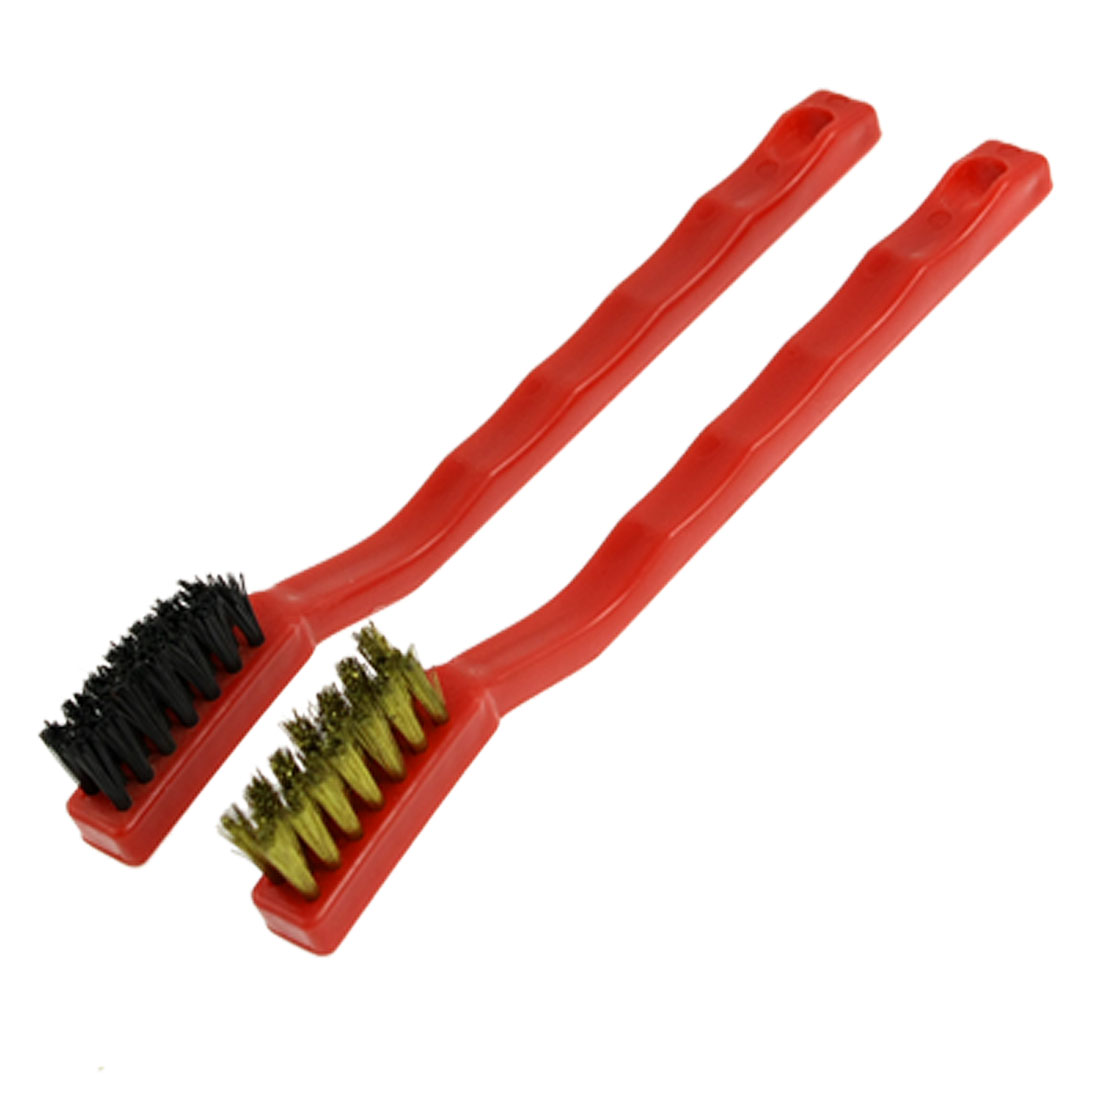 Red Nonslip Handle Plastic Brass Wire Clean Brushes 2 Pcs